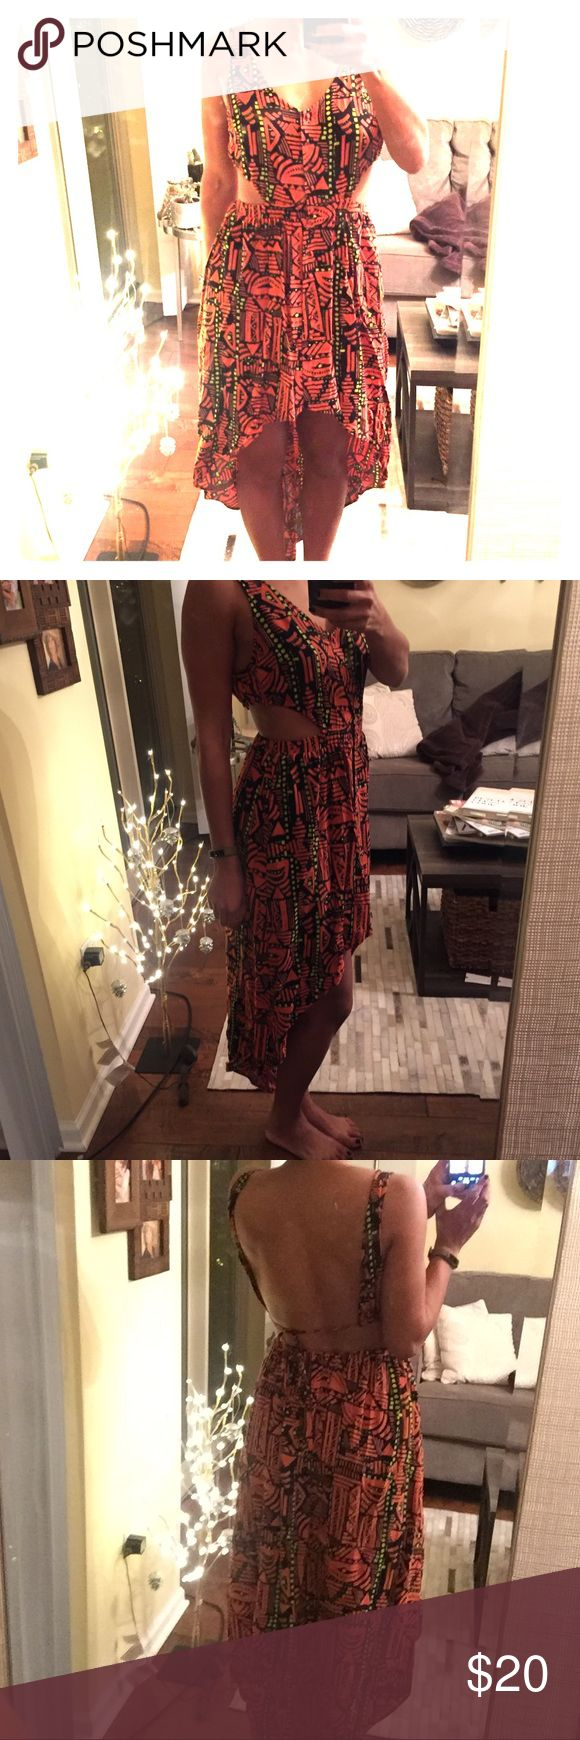 High low cutout print dress-great for festivals! High low tribal print dress. Sexy, comfortable, great for summer festivals! Huntingbird (Urban Outfitters) Dresses High Low